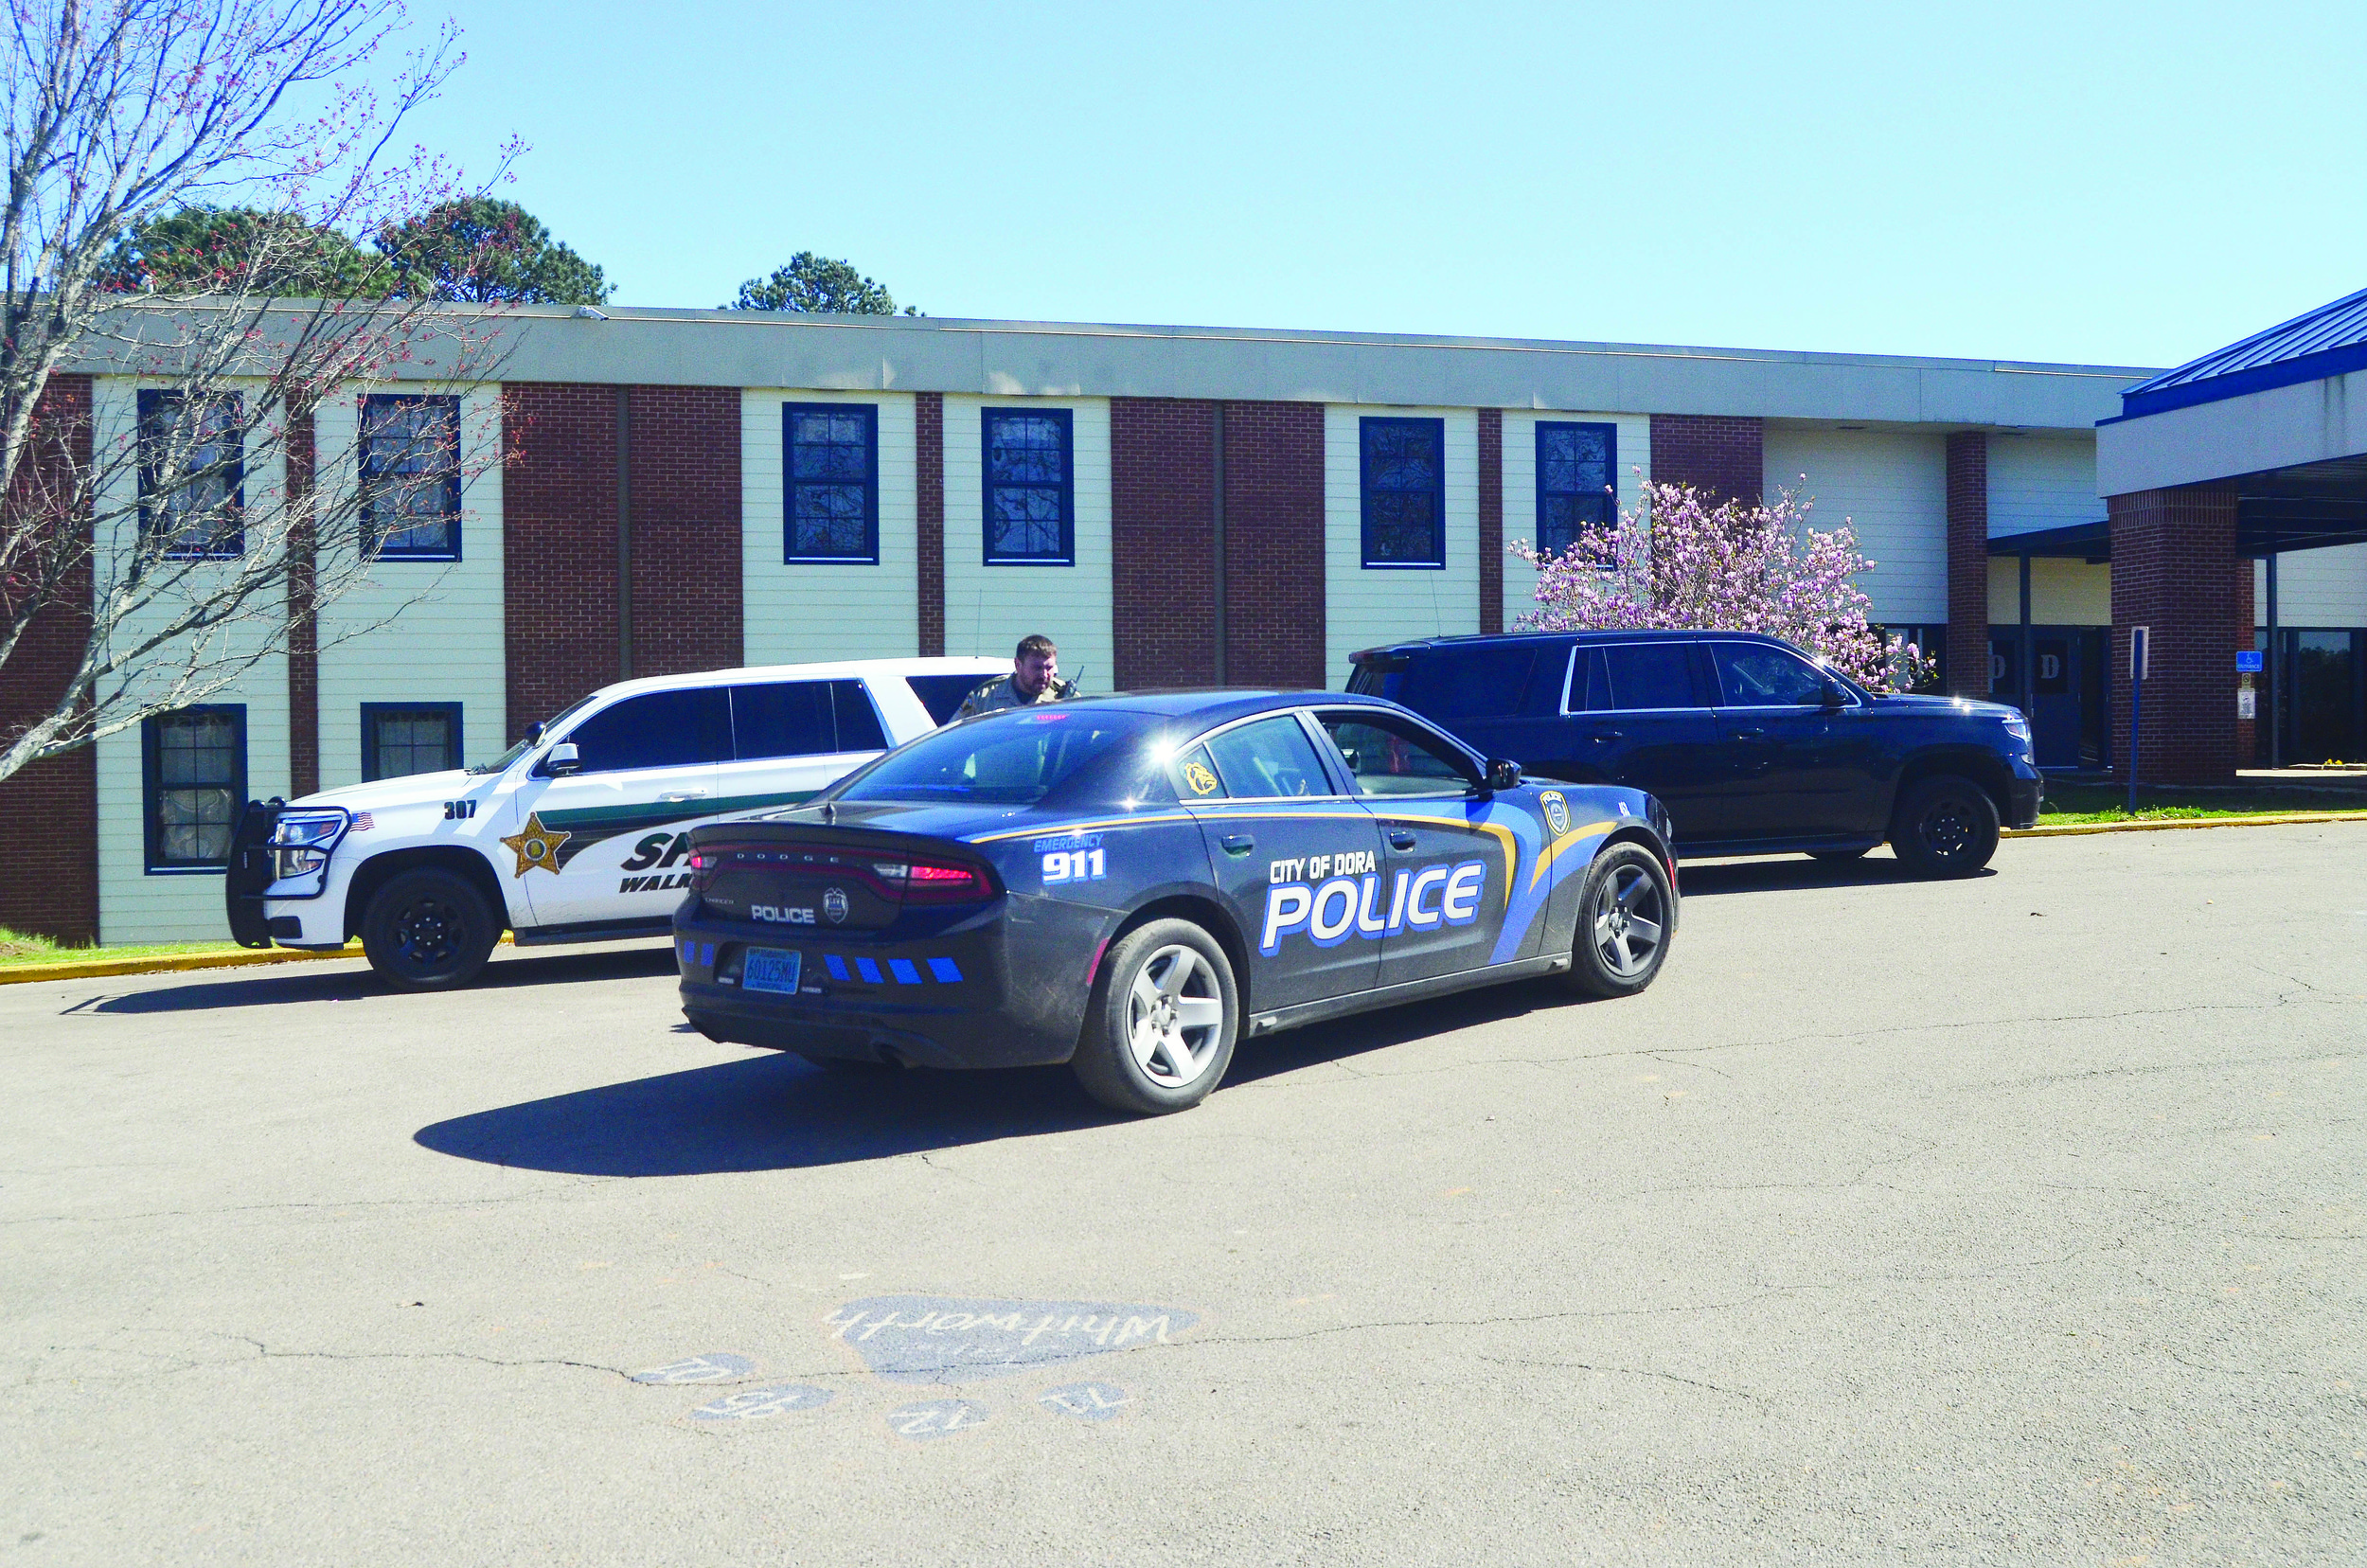 Schools in East Walker were placed on lockdown Thursday afternoon. Members of the Dora Police Department and Walker County Sheriff's Office patrolled the outside of Dora High School.